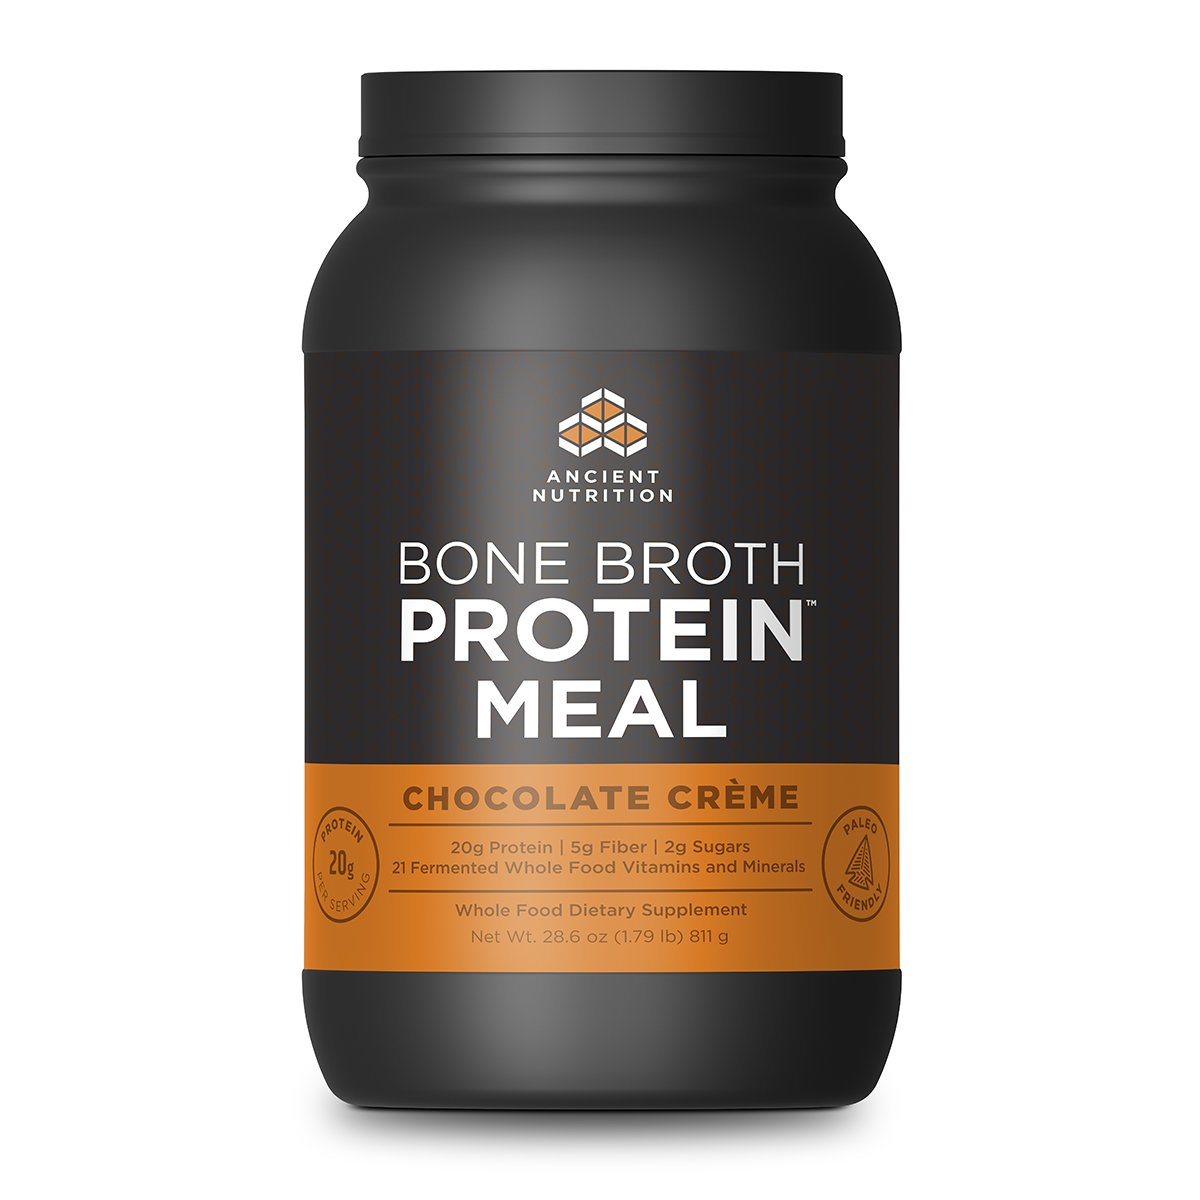 Ancient Nutrition Bone Broth Protein MEAL (Chocolate Crème)